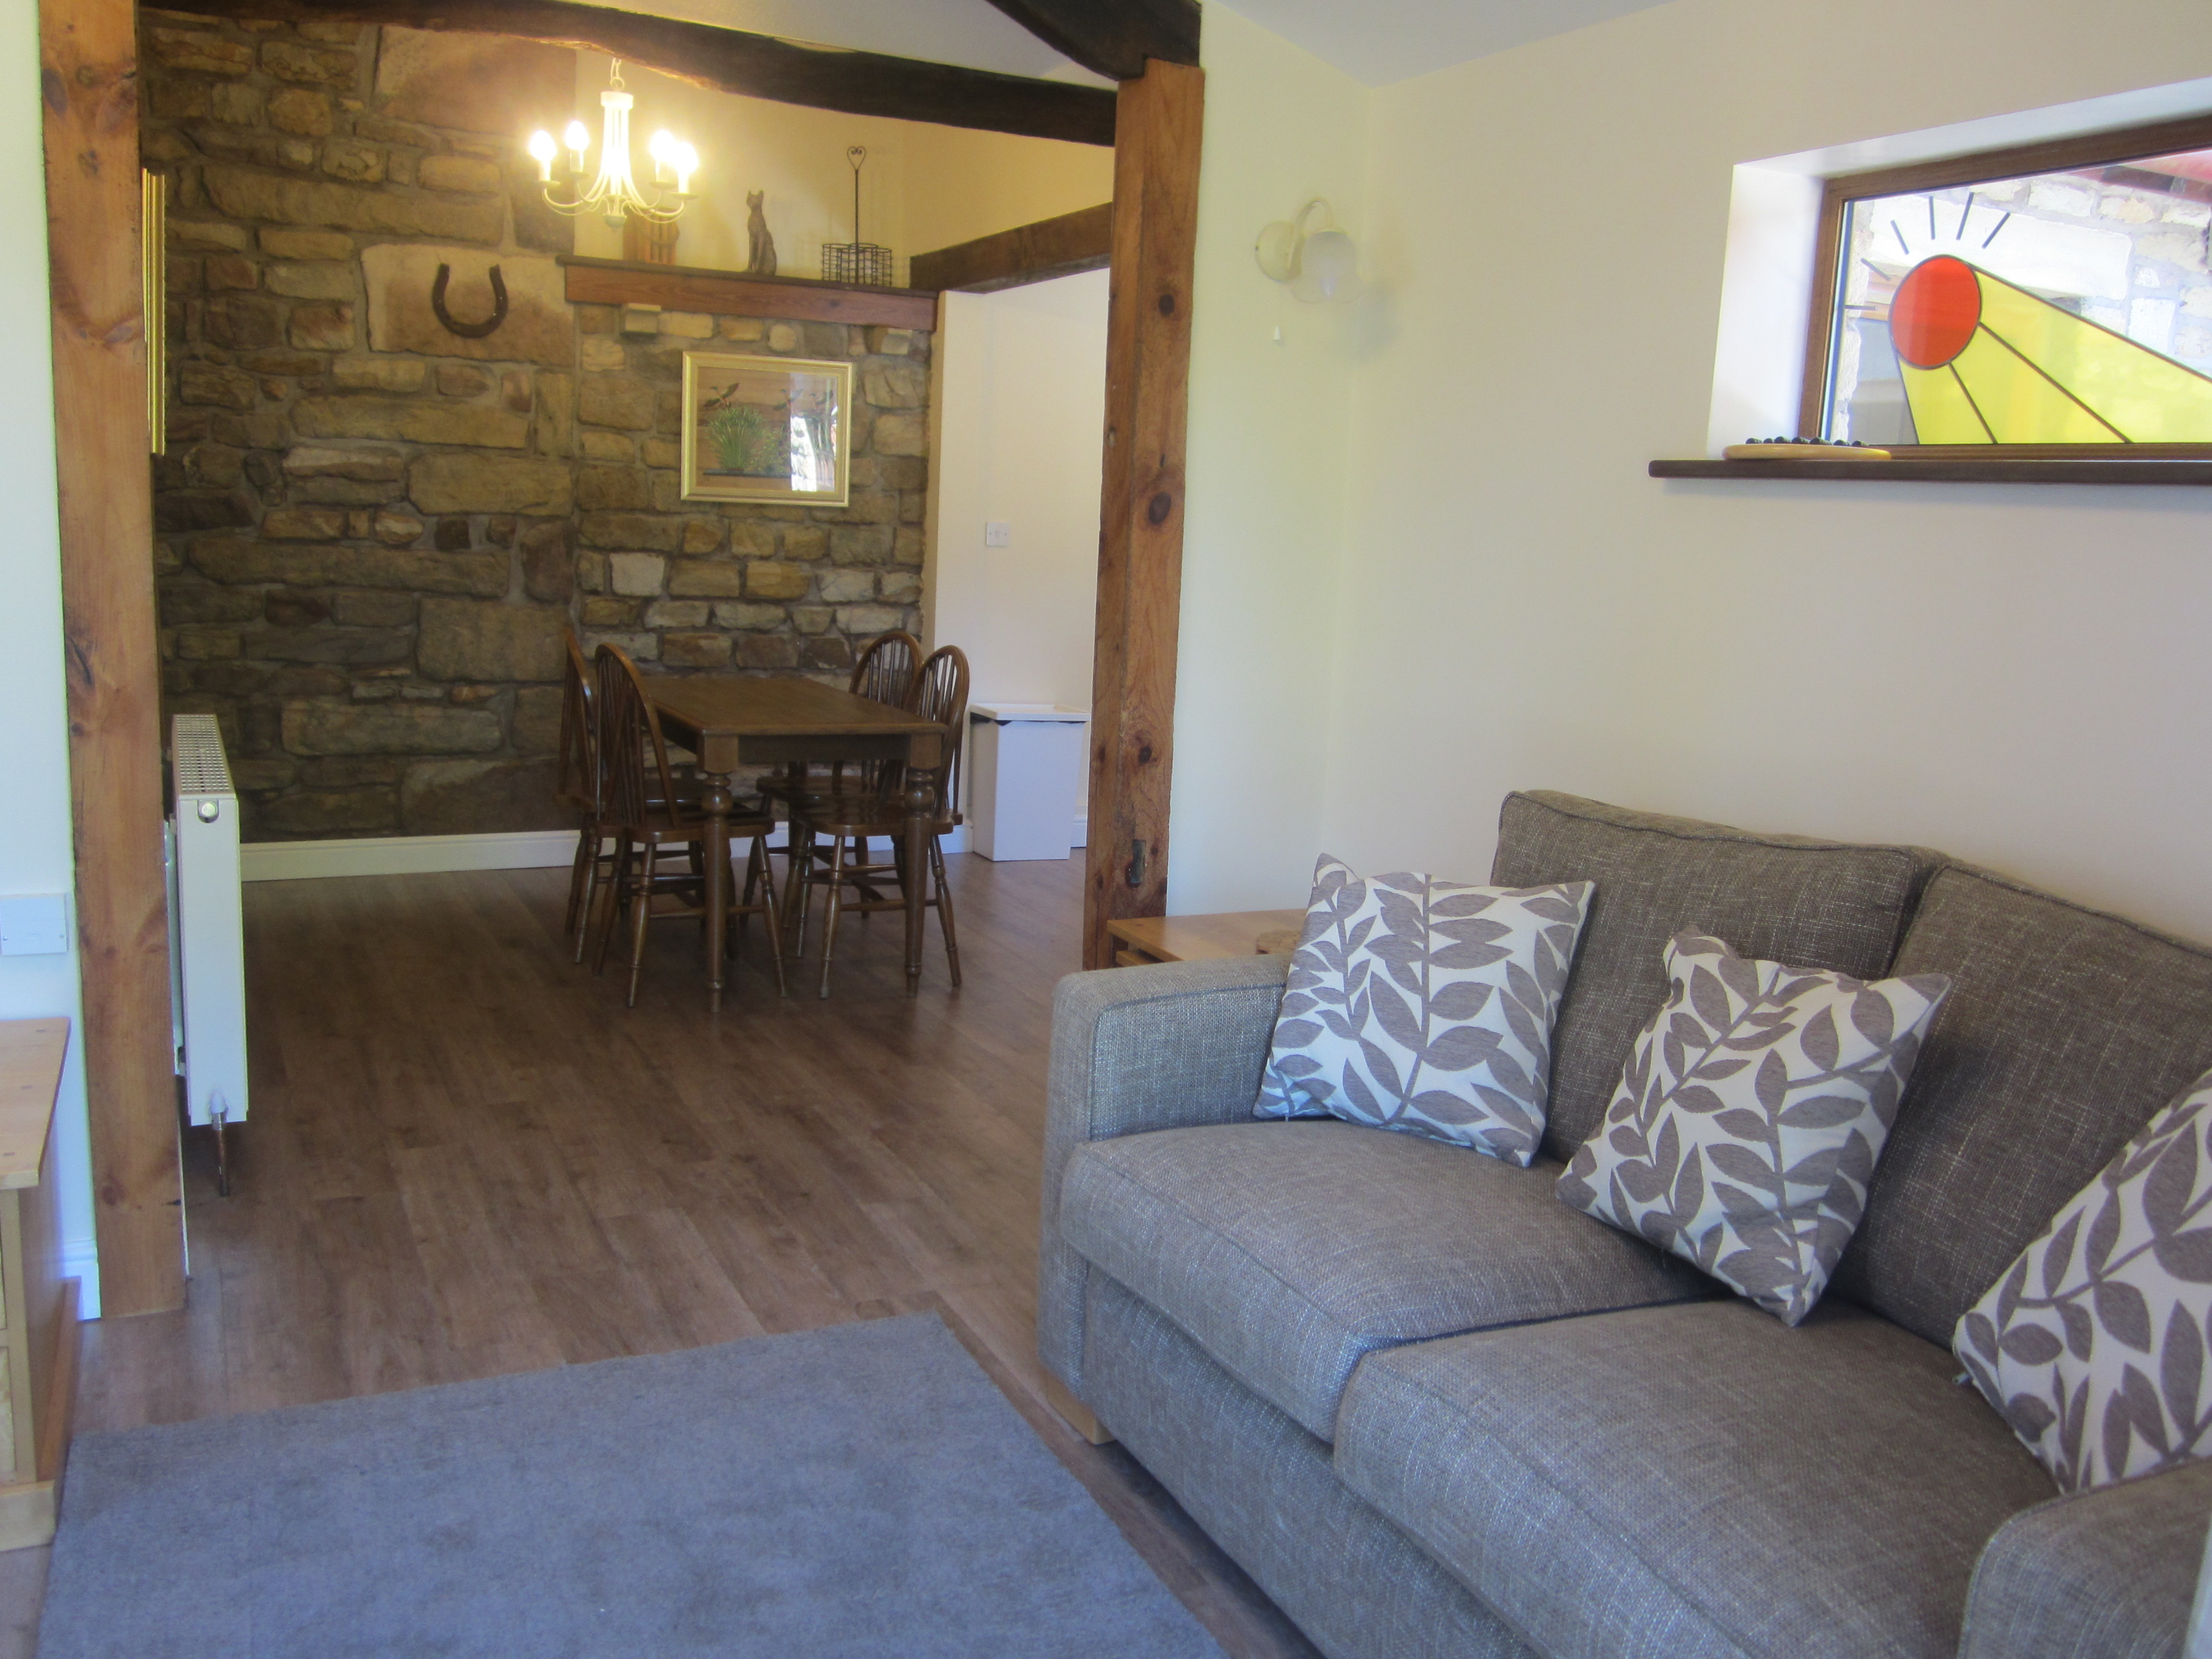 Ivy Cottage caters for up to four people